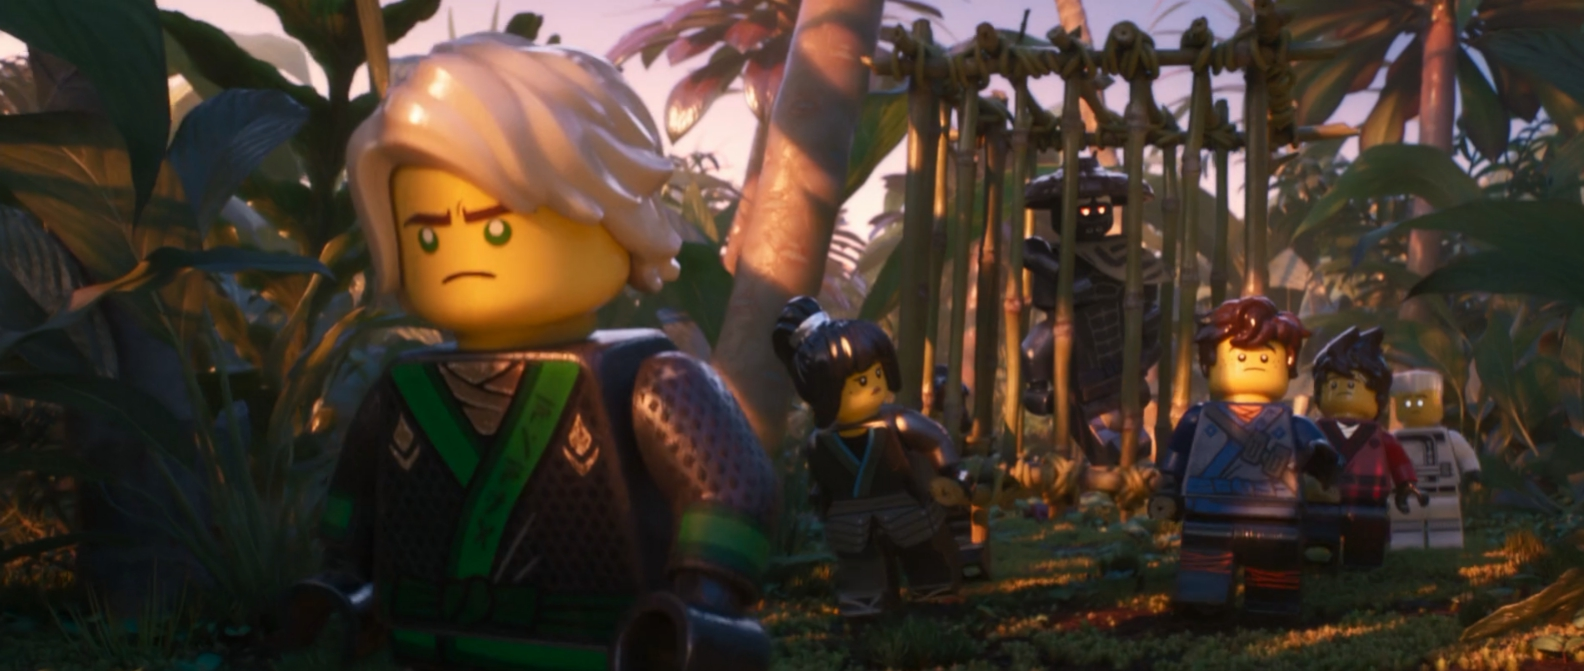 The Lego Ninjago Movie Movie Review